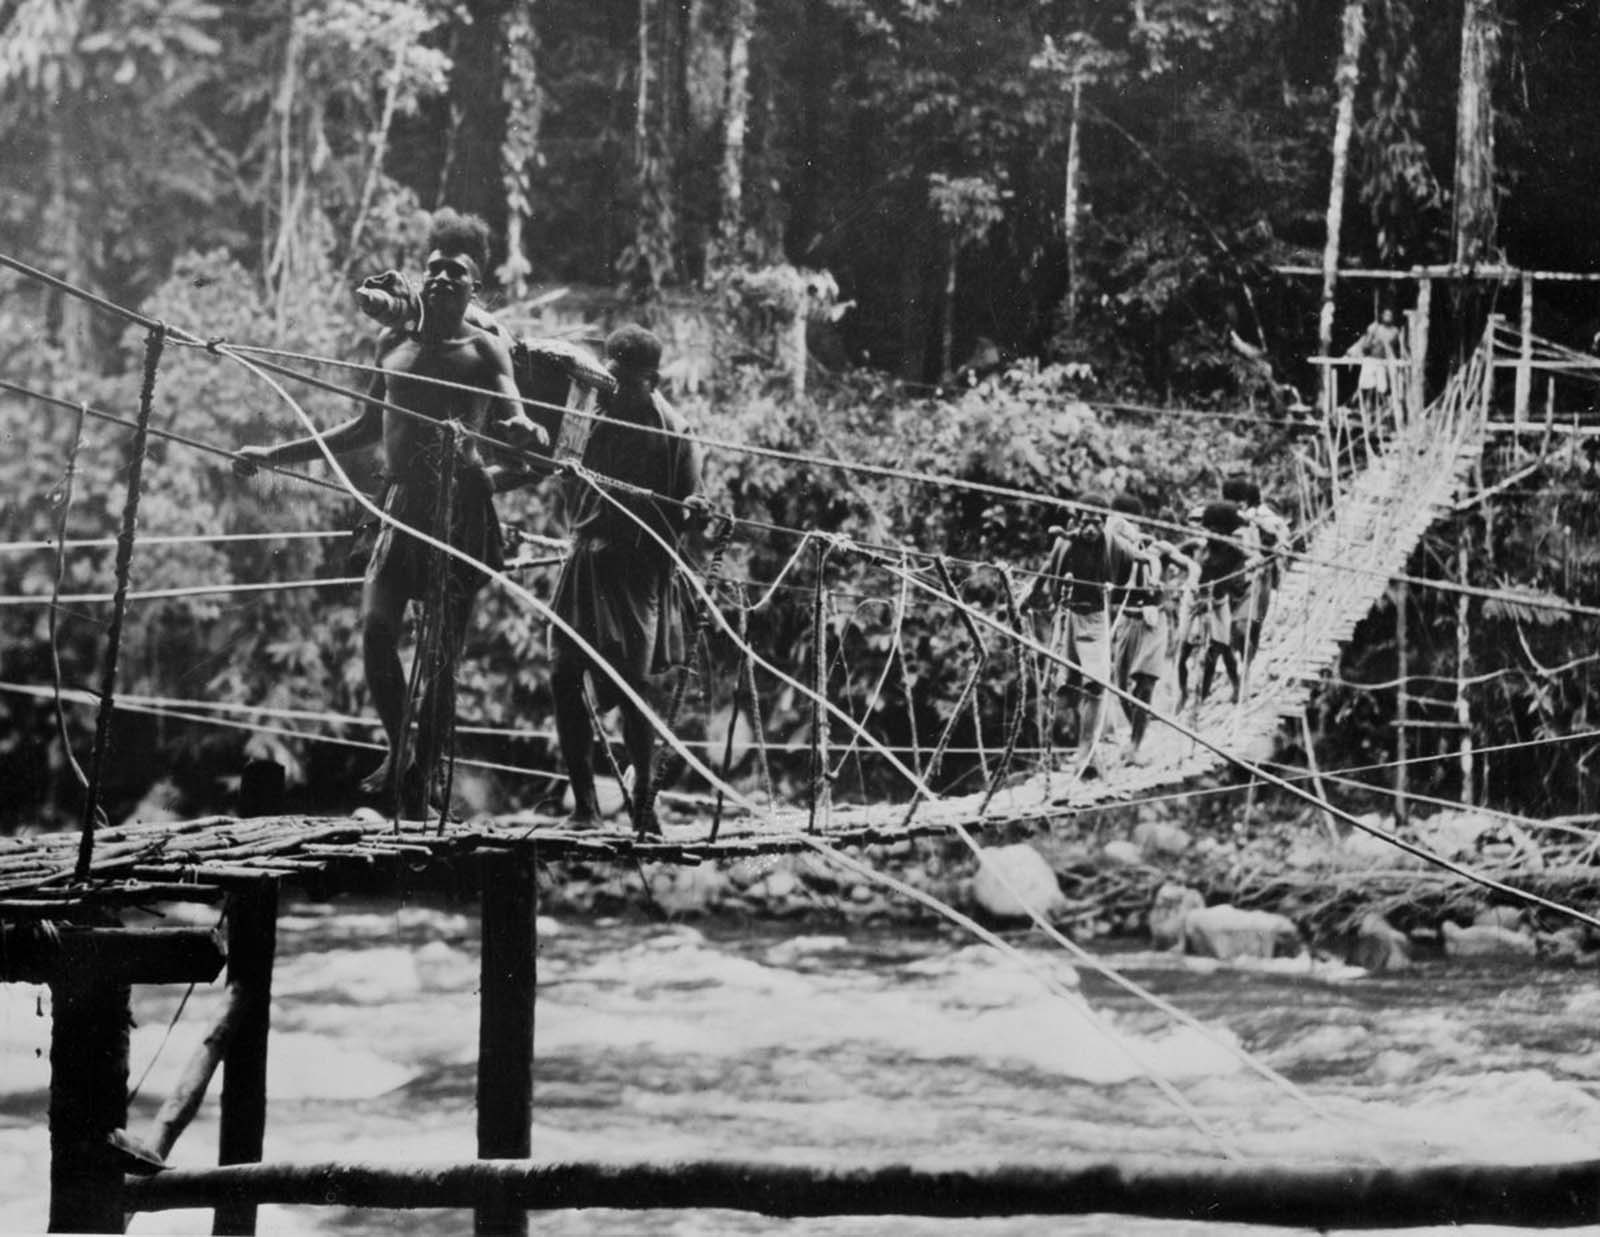 Men carry supplies over a newly built bridge.